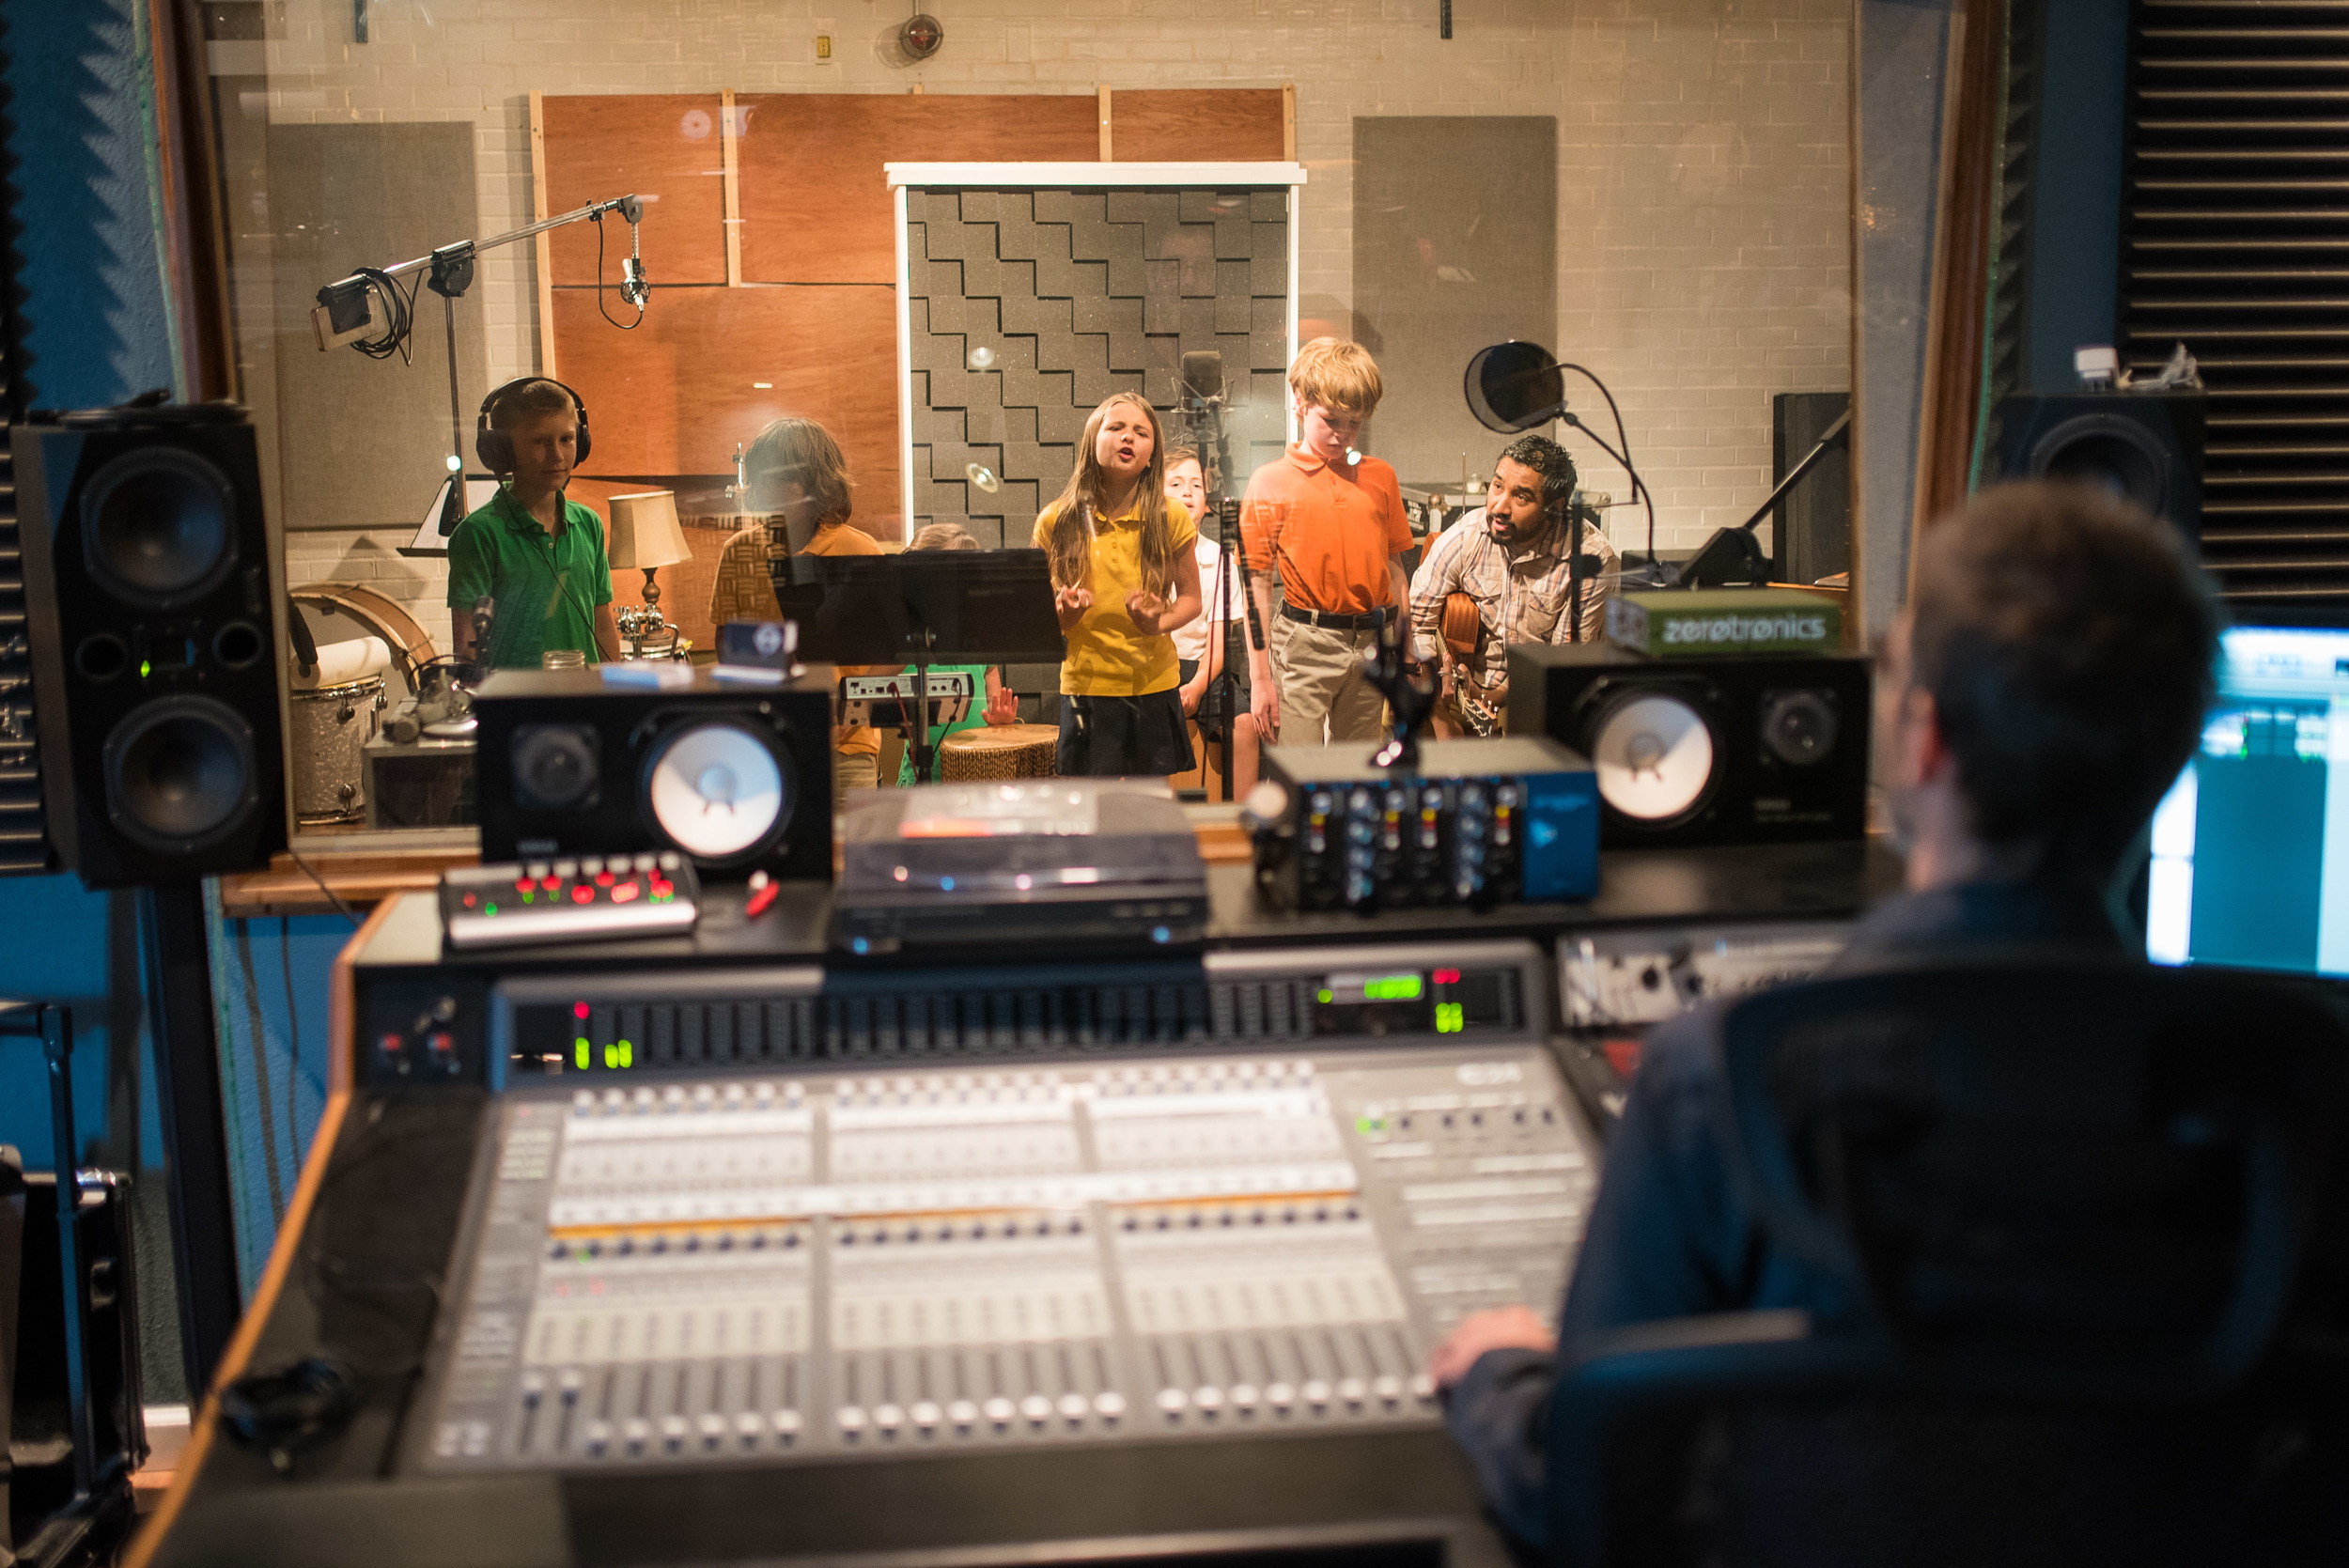 After a semester of learning rhythm and theory, Mr. Reyes' Musical Development class wrote their own worship song for a final class project. They then had the privilege of recording it at Center Street Recording Studio--an experience they will not forget!